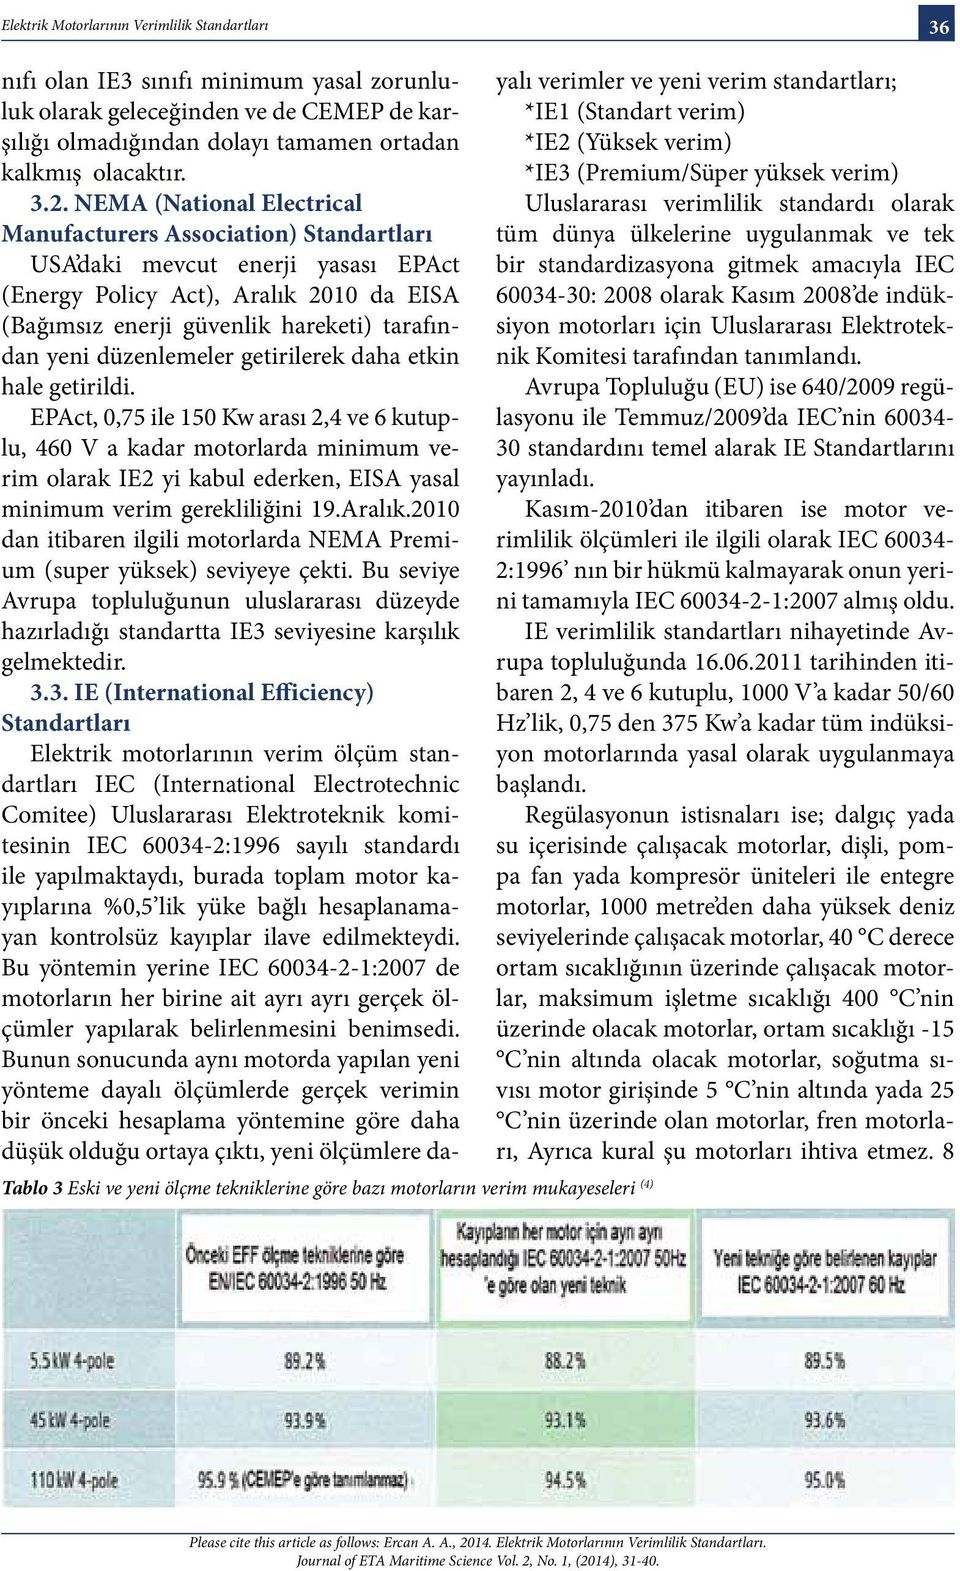 NEMA (National Electrical Manufacturers Association) Standartları USA daki mevcut enerji yasası EPAct (Energy Policy Act), Aralık 2010 da EISA (Bağımsız enerji güvenlik hareketi) tarafından yeni